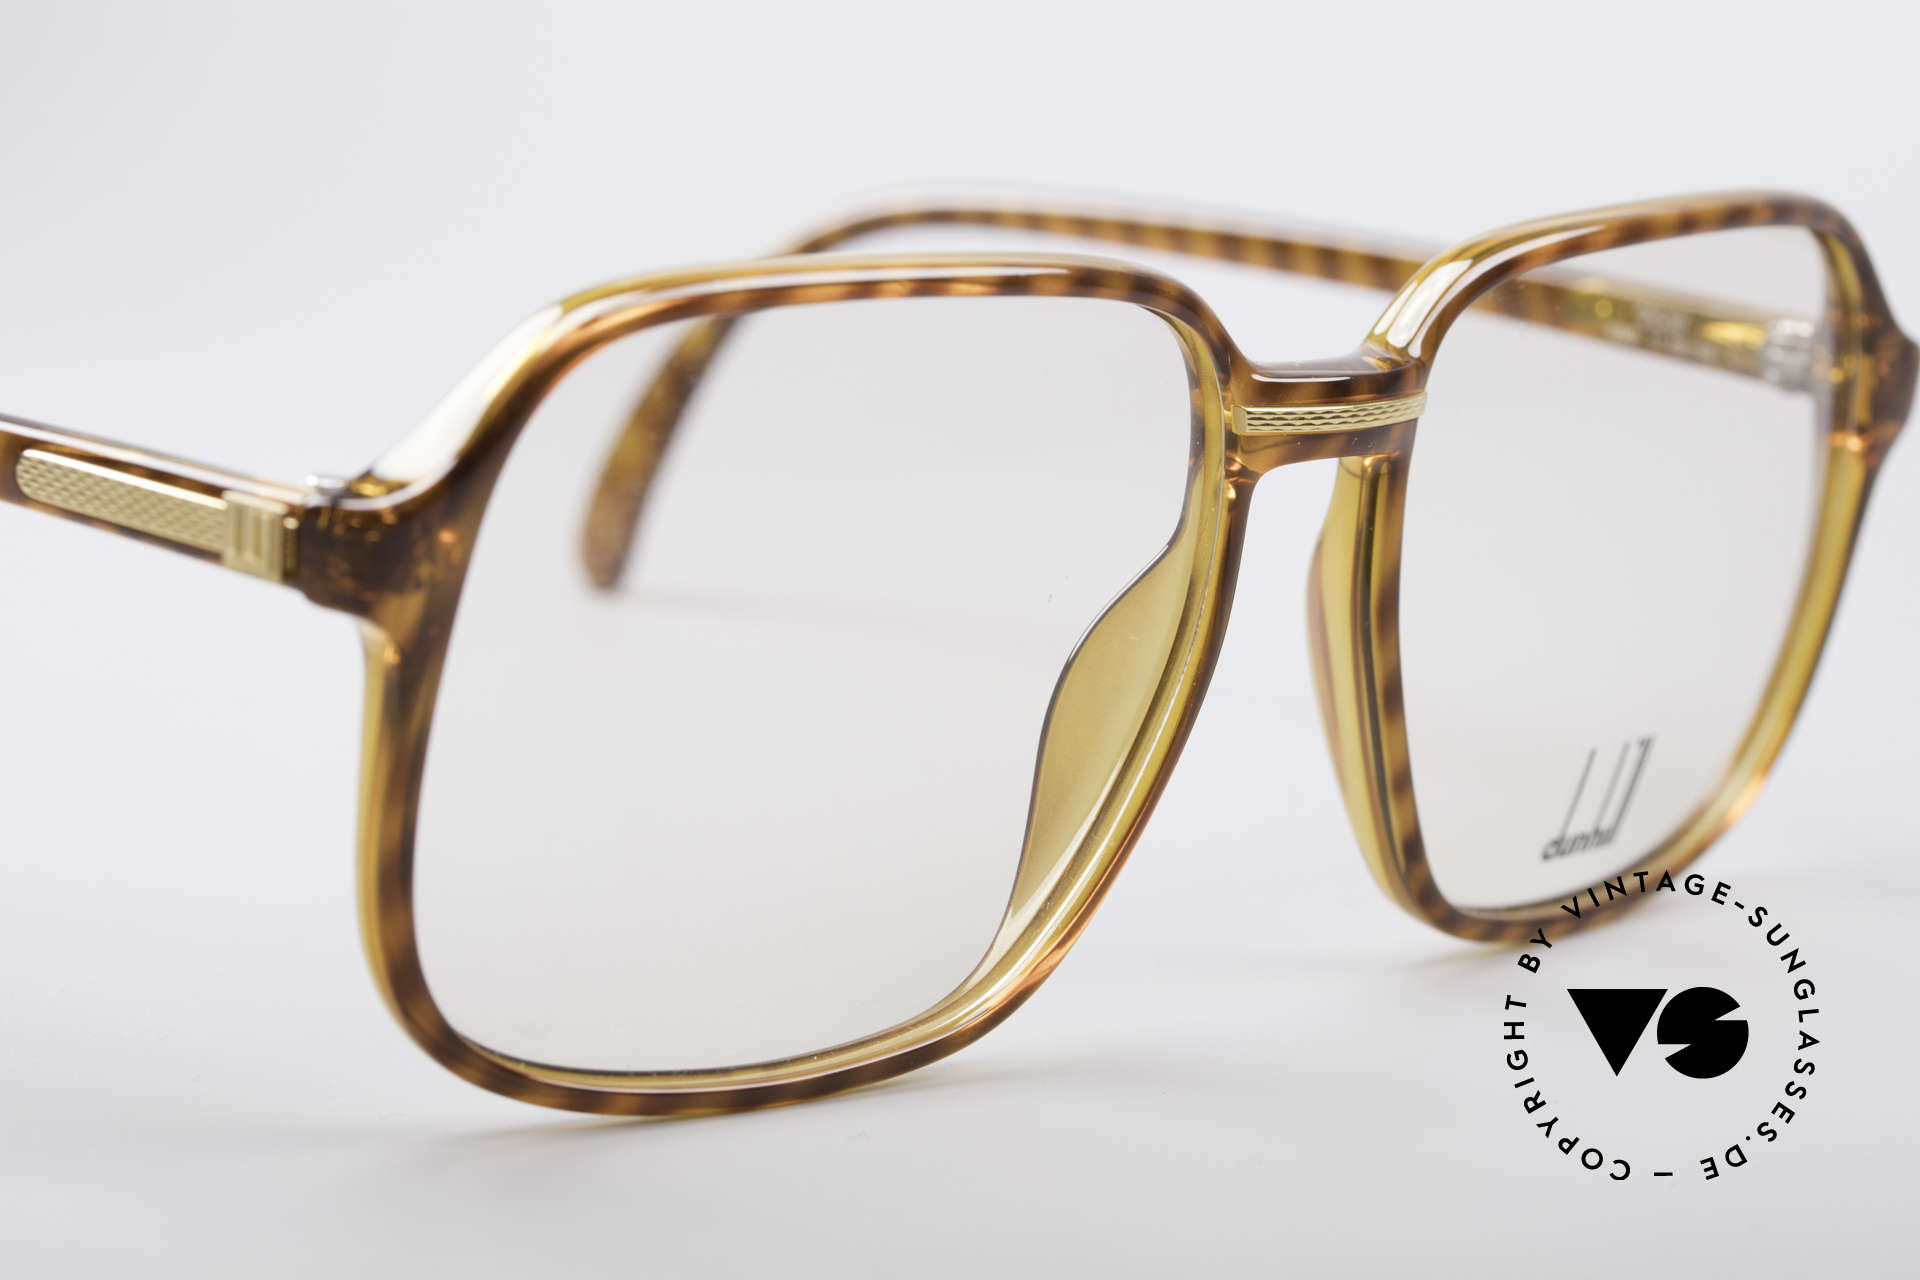 Dunhill 6060 Classic 80's Eyeglasses, new old stock (like all our vintage designer eyewear), Made for Men